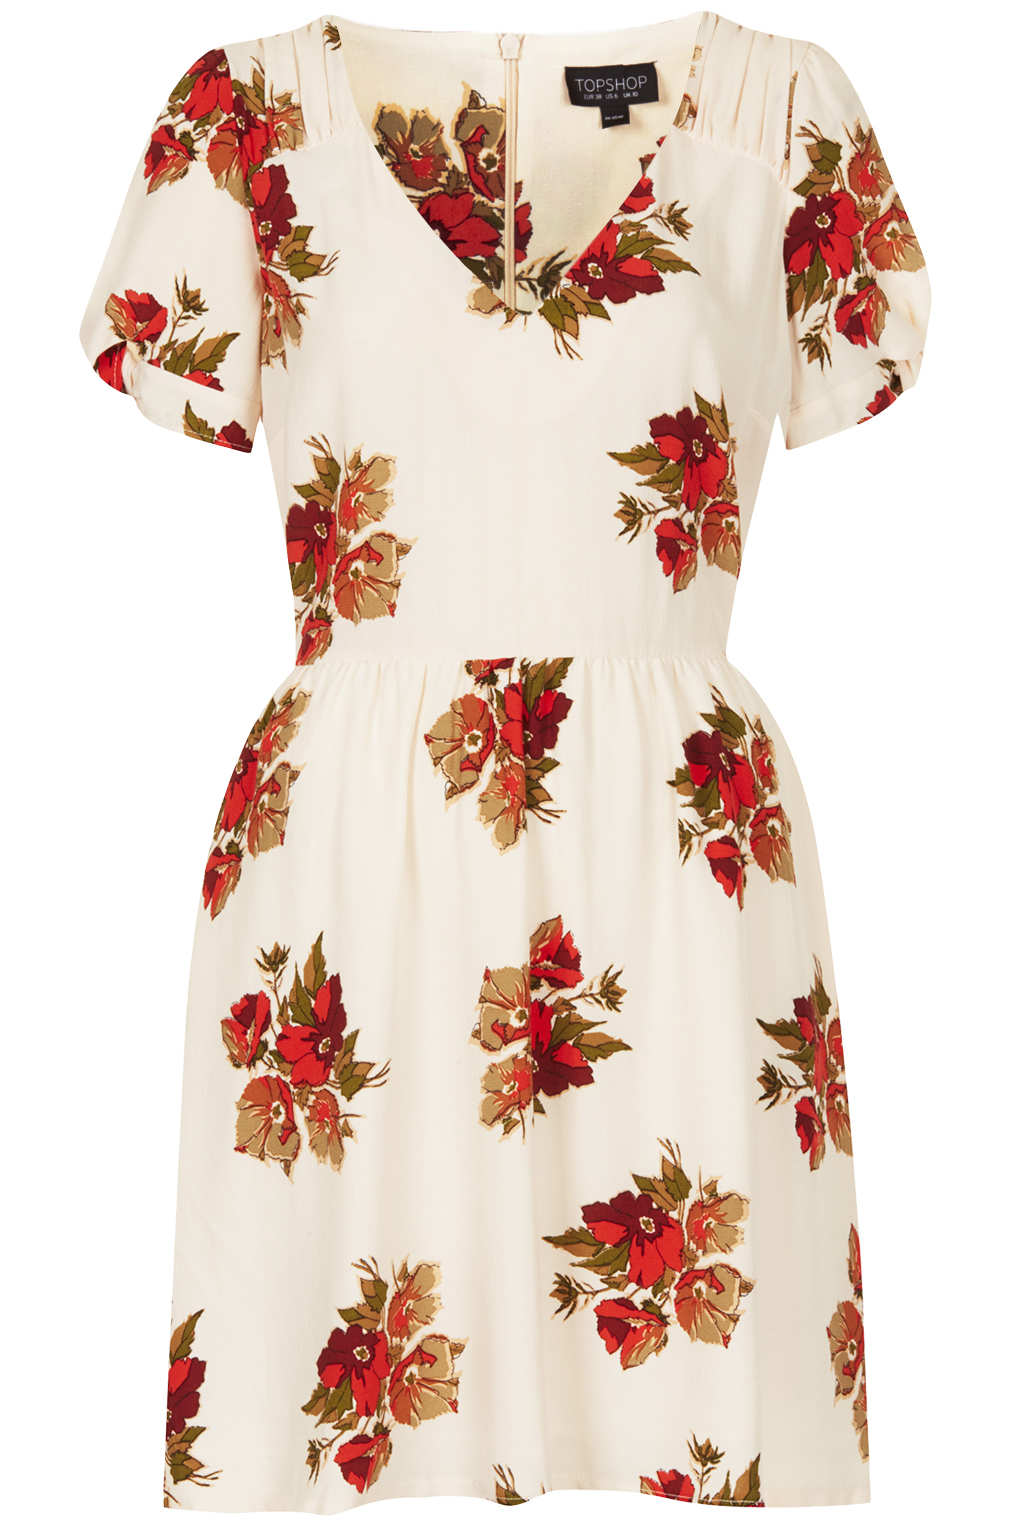 Topshop Autumn Floral Tea Dress In White Lyst